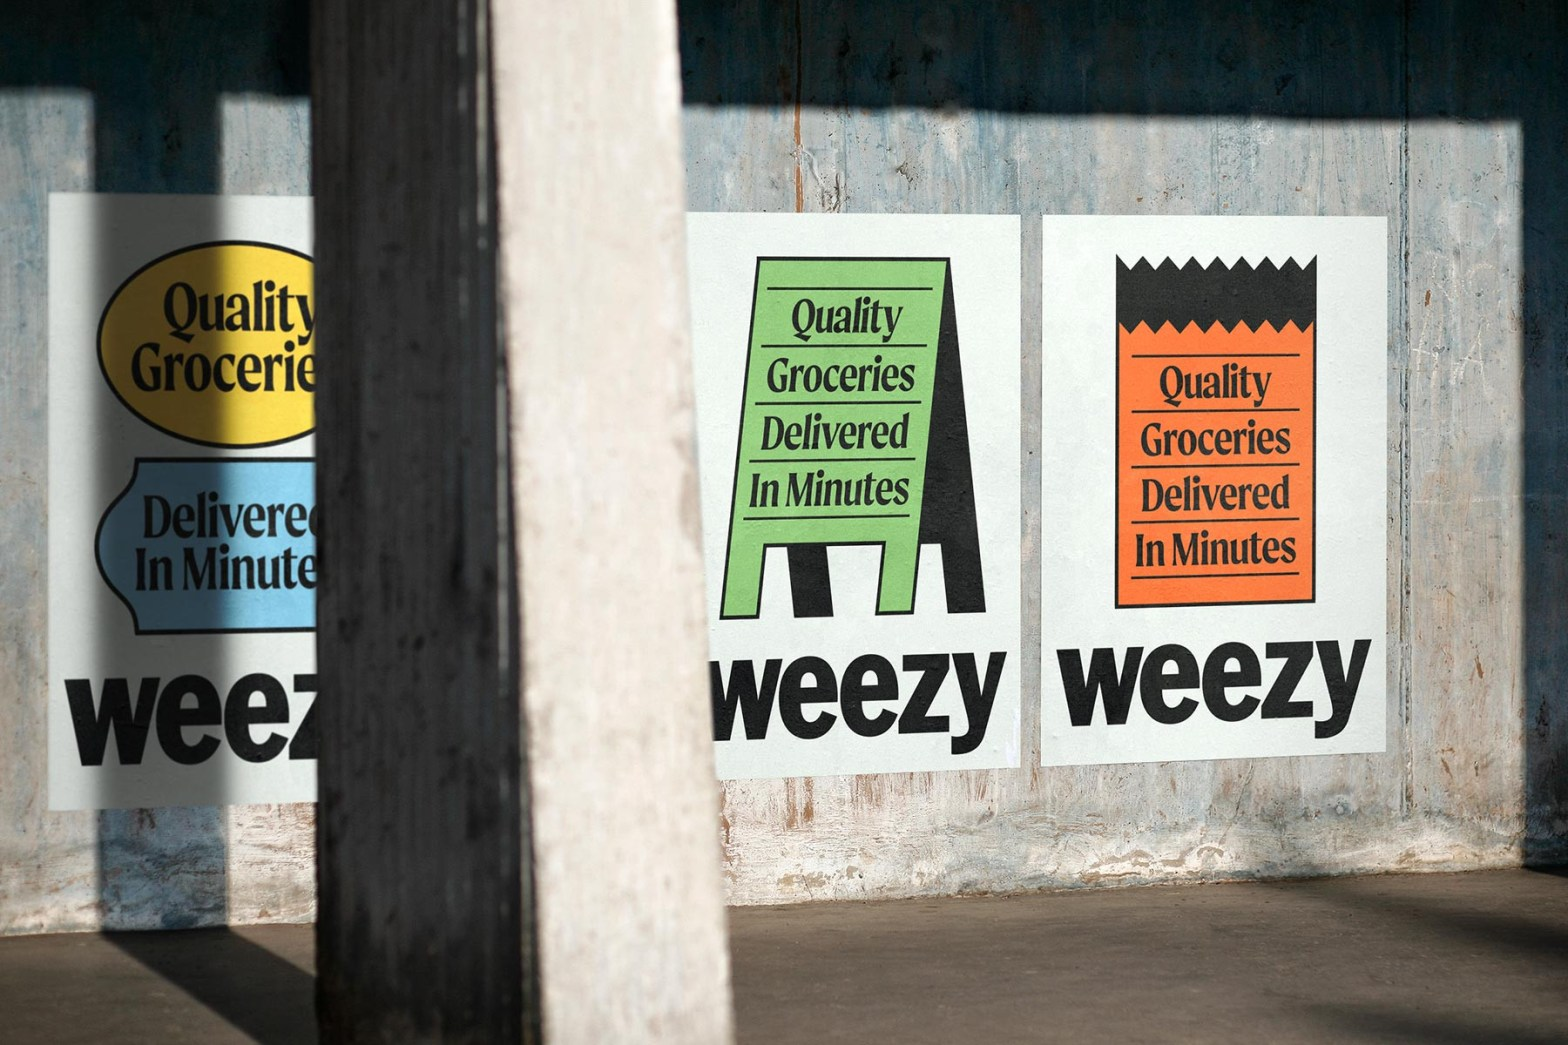 Thumbnail for Weezy Is A Grocery Delivery Service With A Whole Lot Of Personality